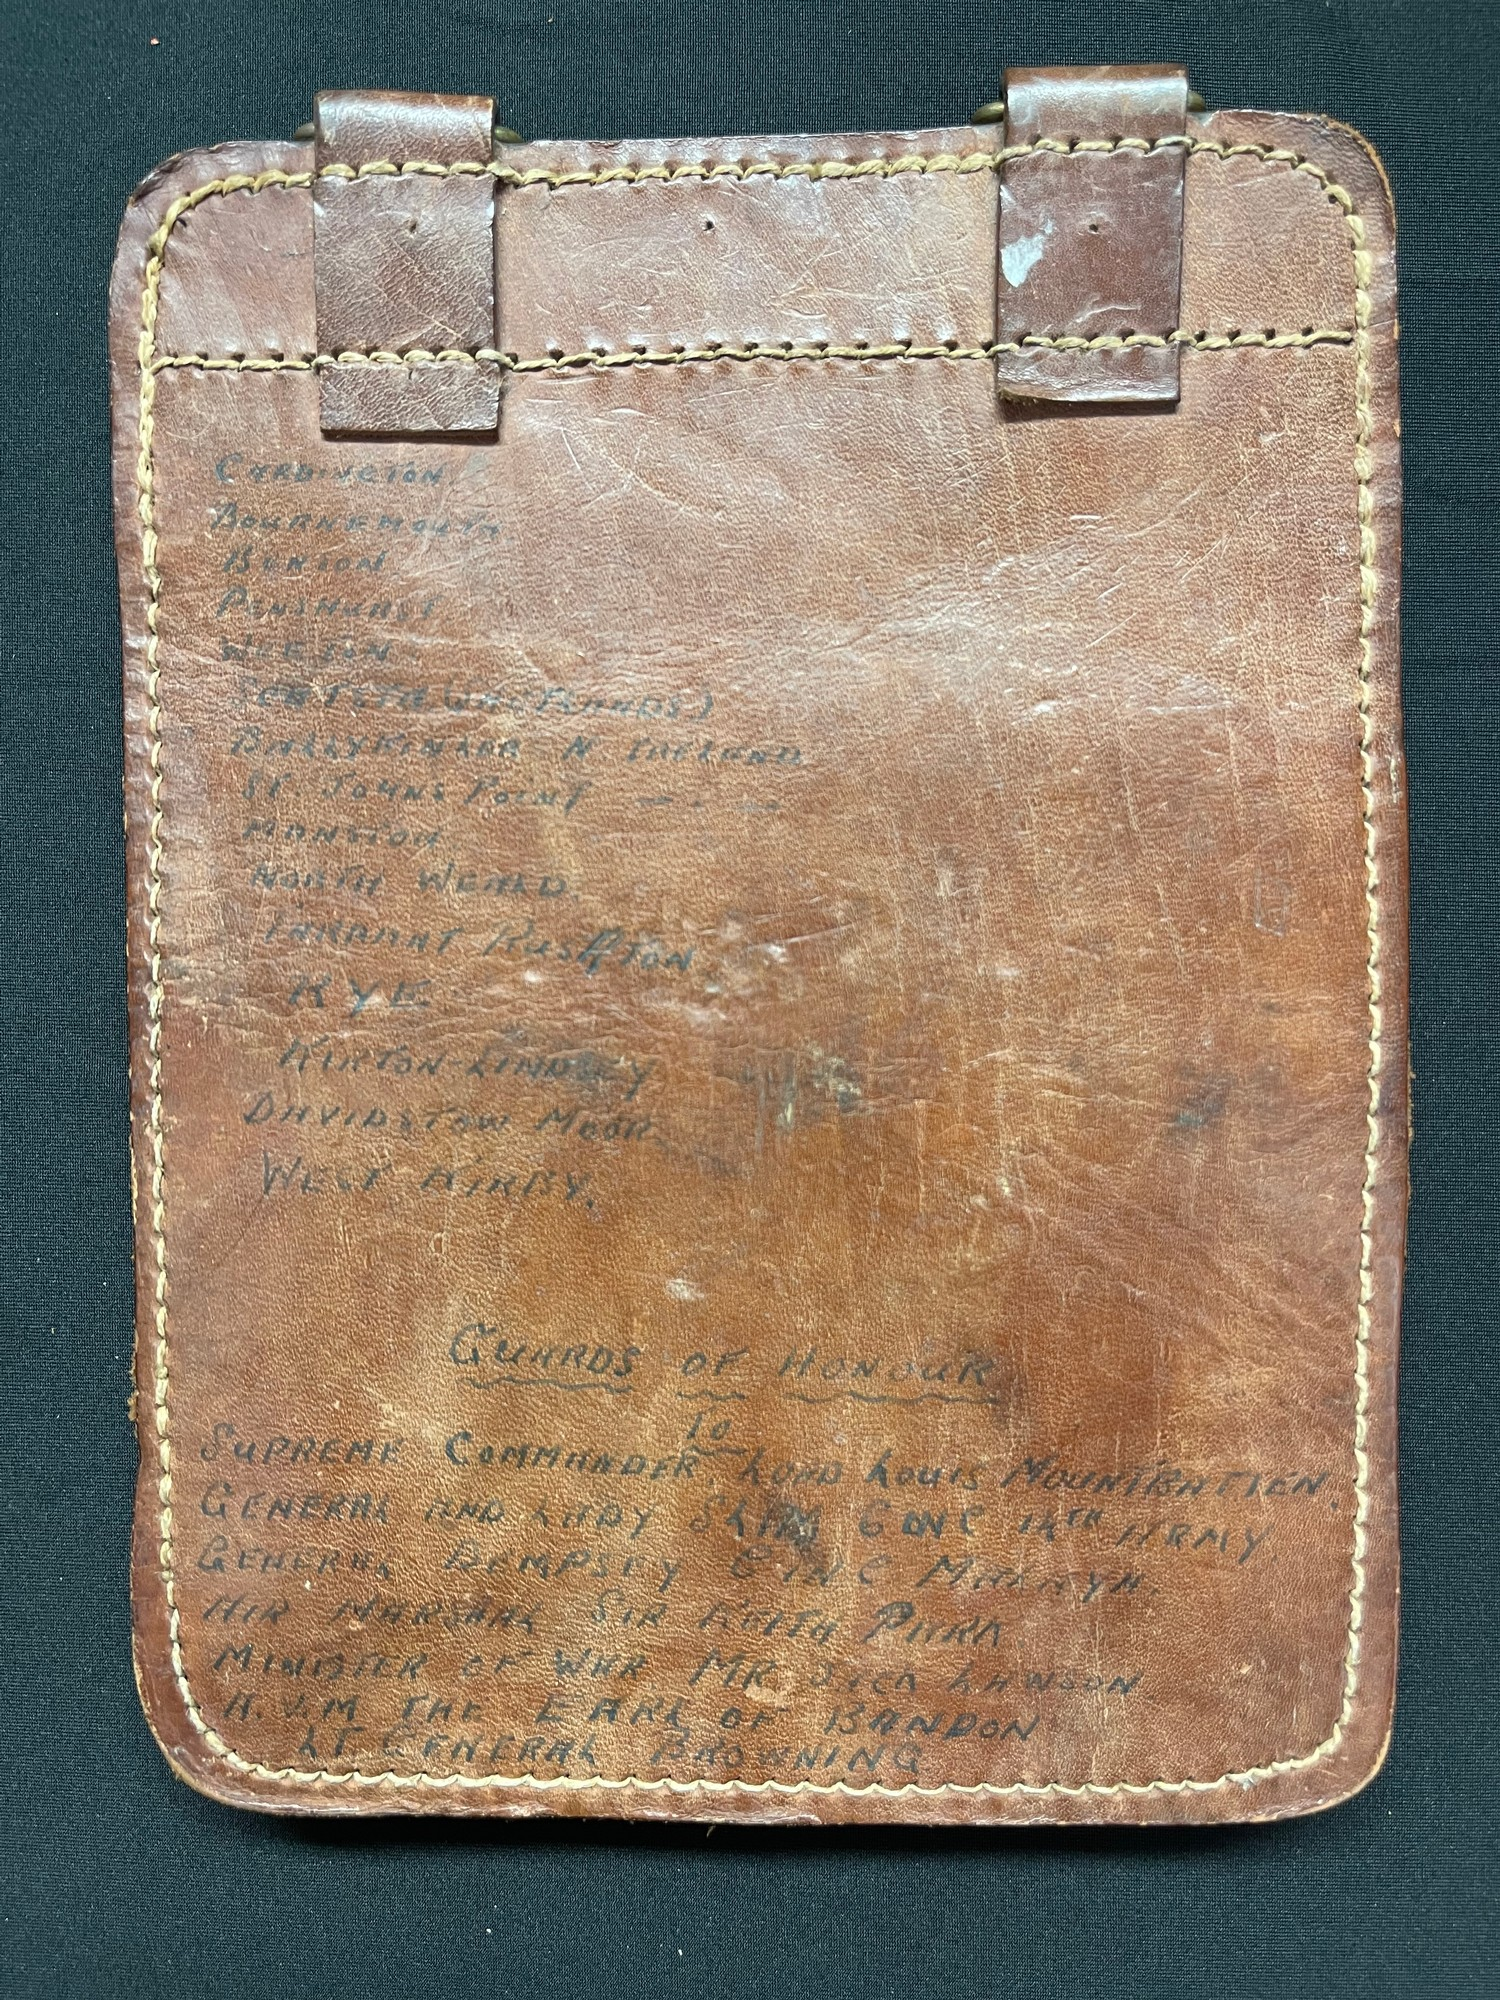 WW2 Japanese Map Case (No Star insignia) covered with written dedications by a member of the Far - Image 2 of 3